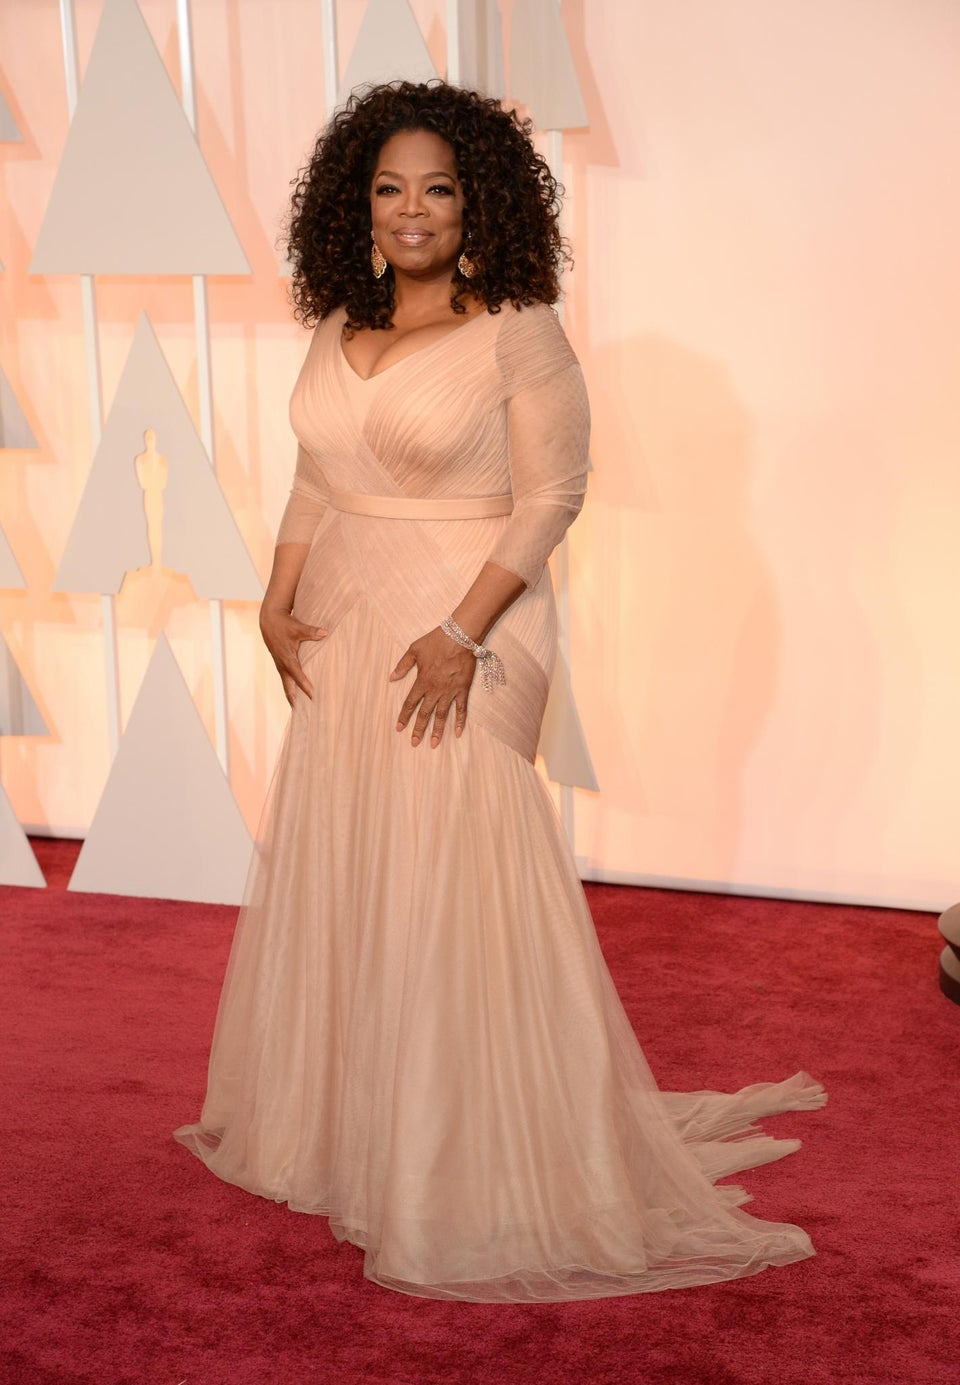 ESSENCE Poll: Who Should Host The Oscars Next Year?